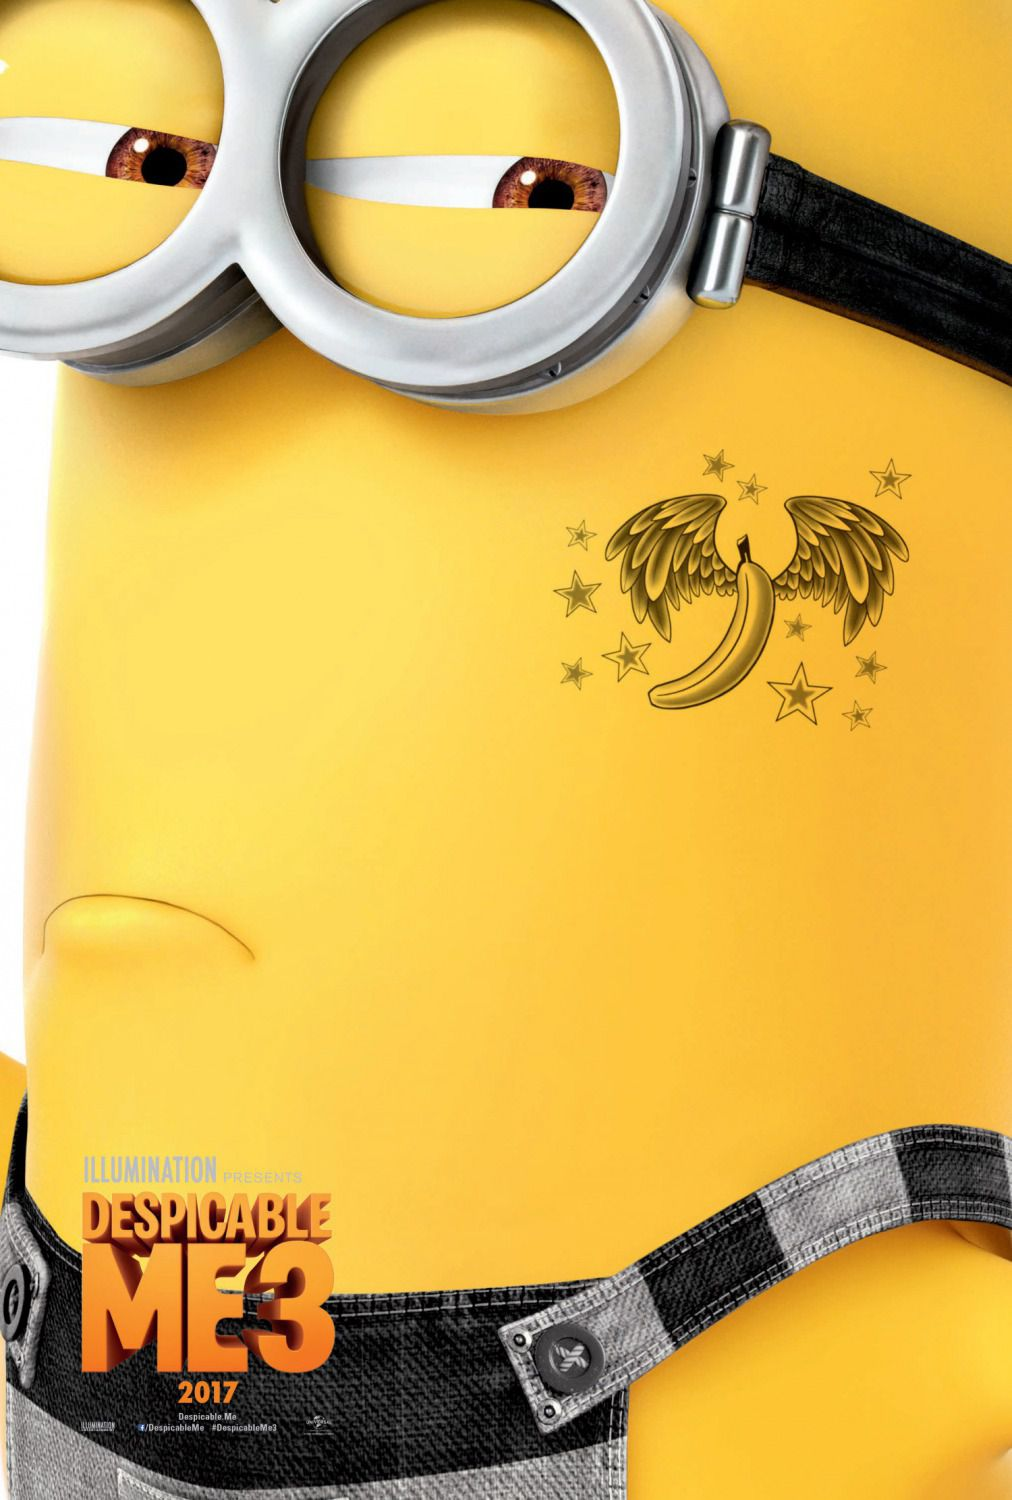 Despicable Me 3 - So Bad - Cattivissimo Me 3 - Minions Tatoo Banana